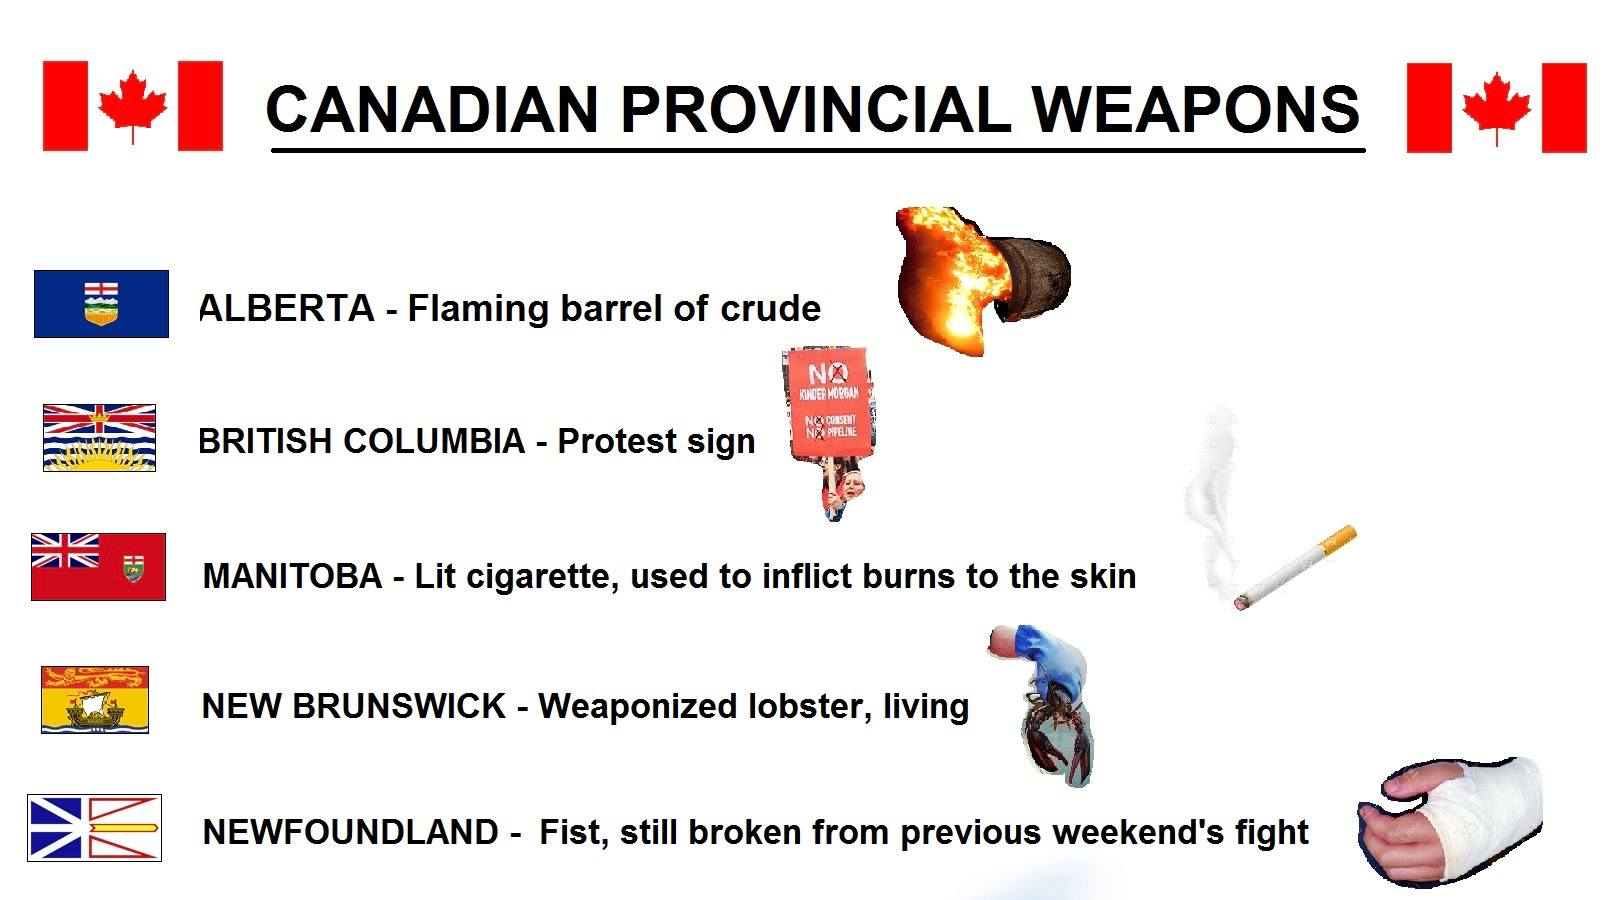 Canadian provincial weapons